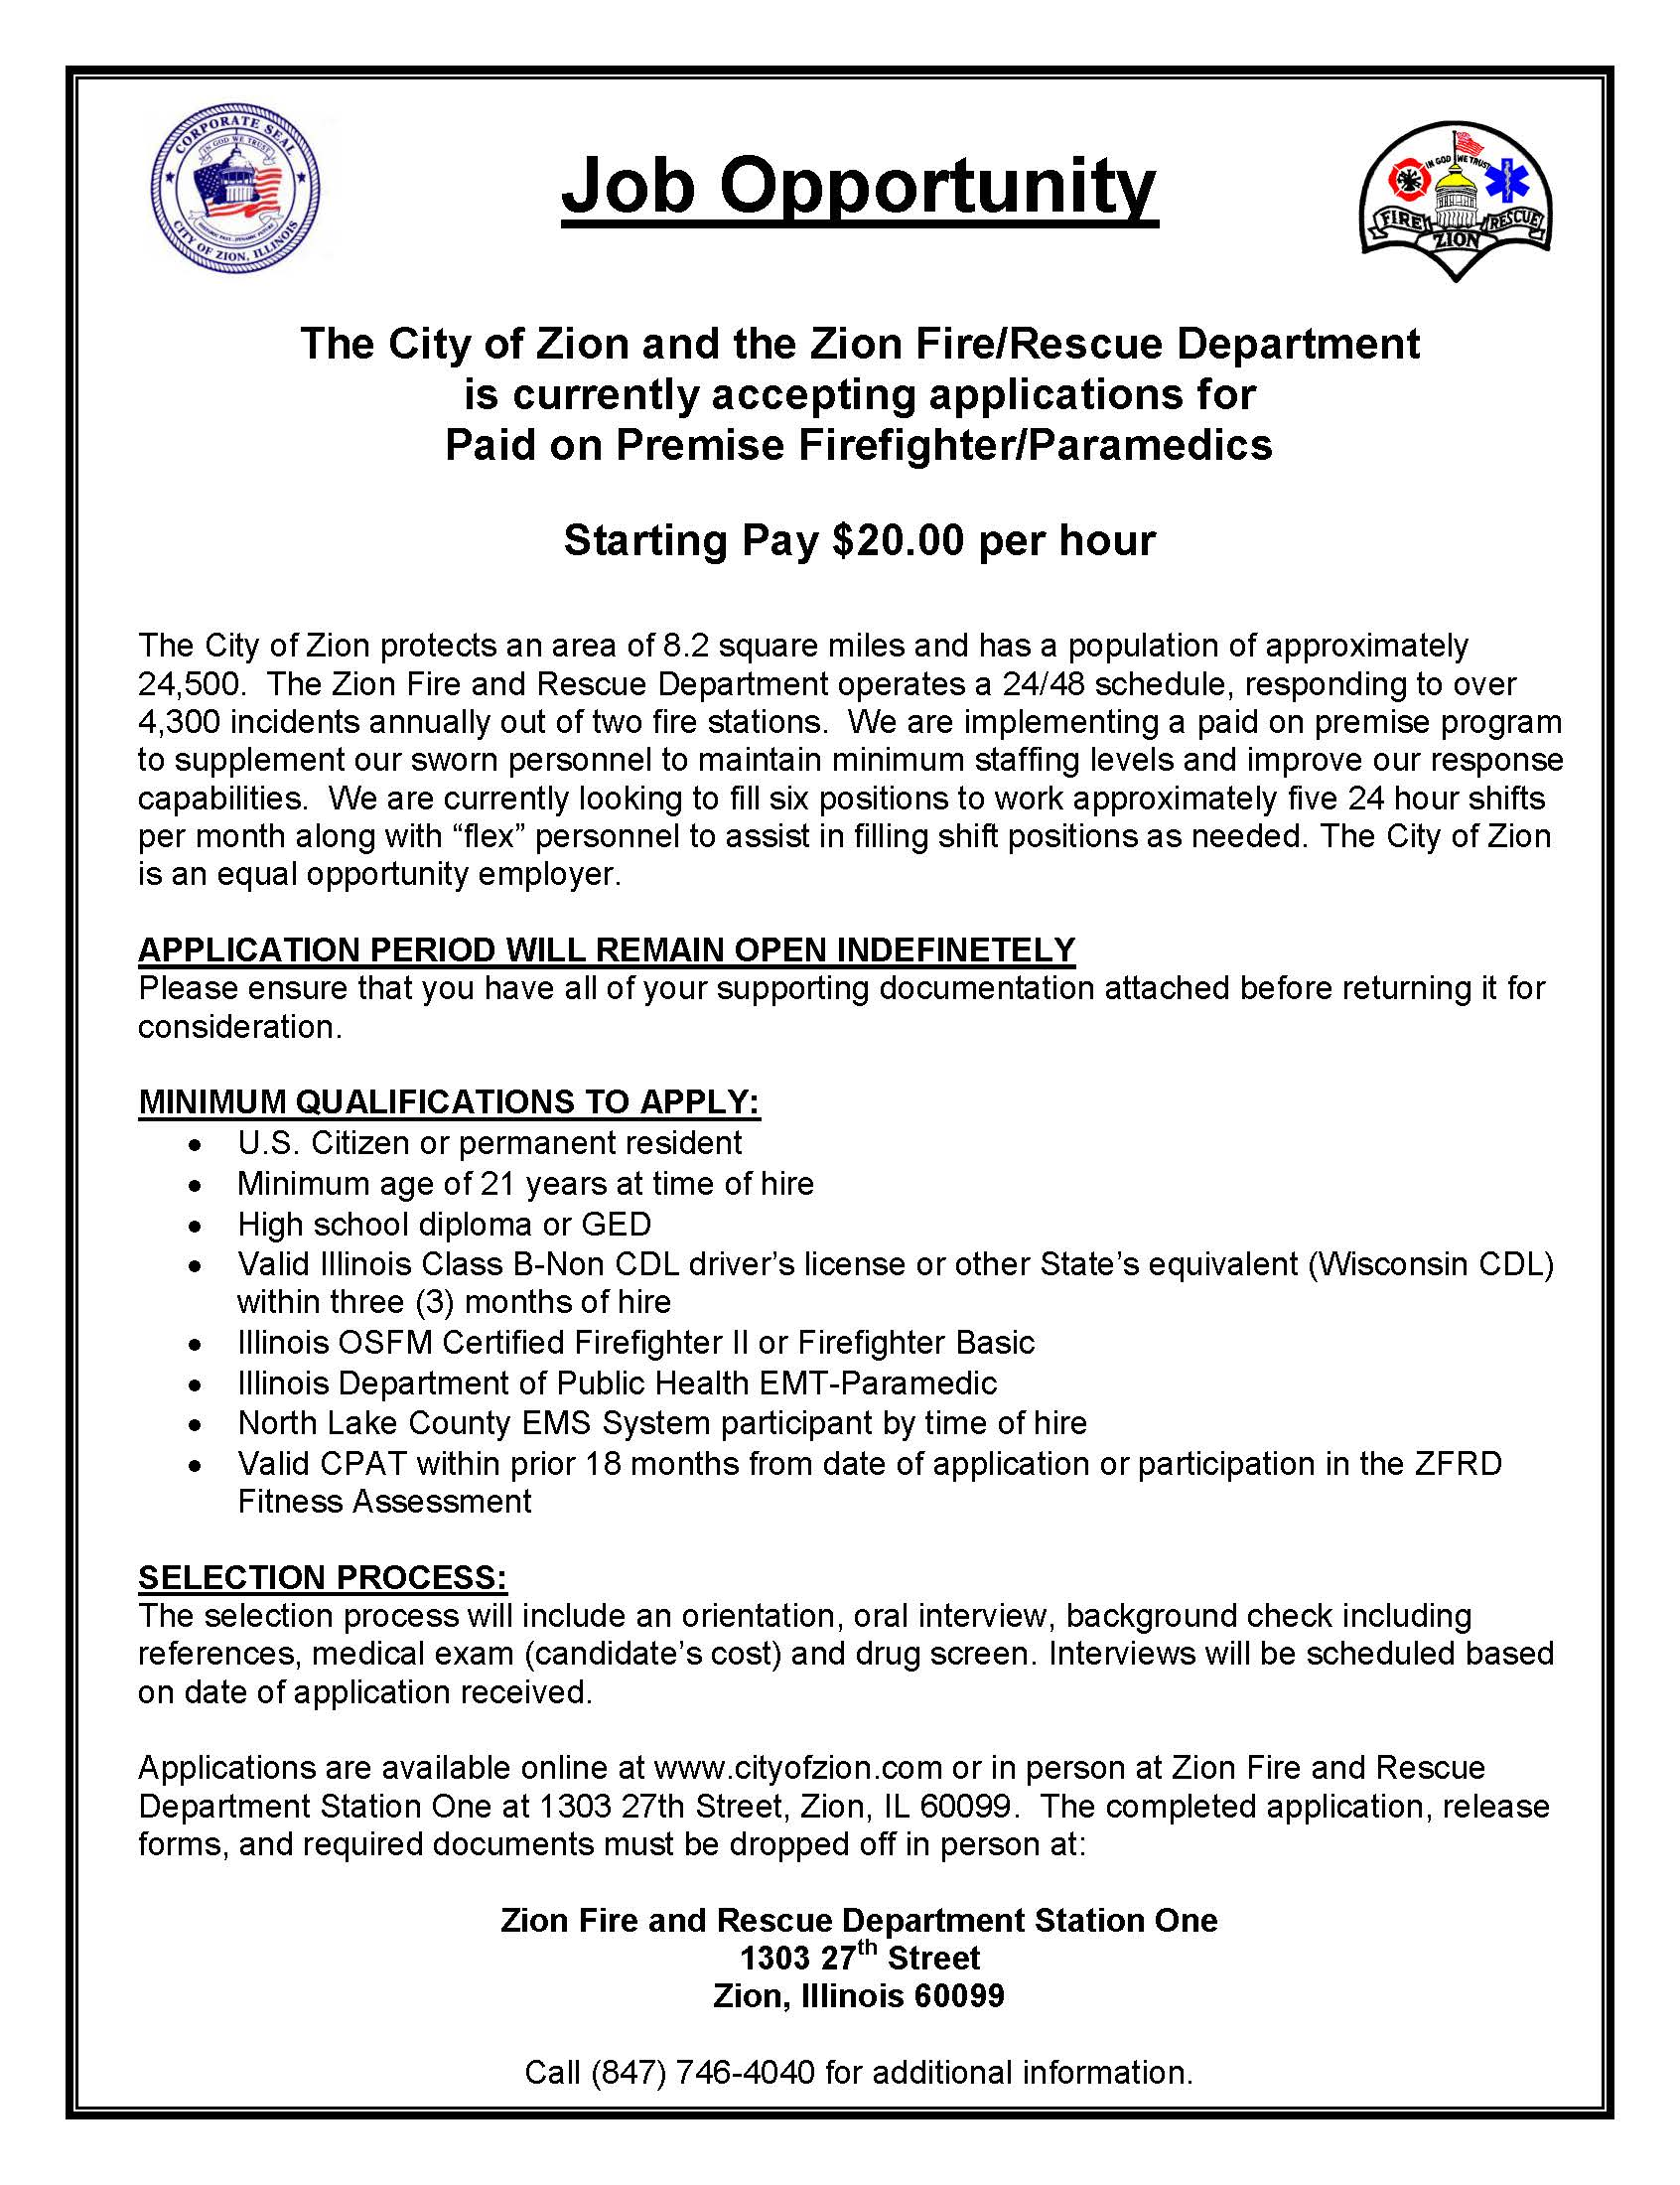 Fire & Rescue Department - City of Zion